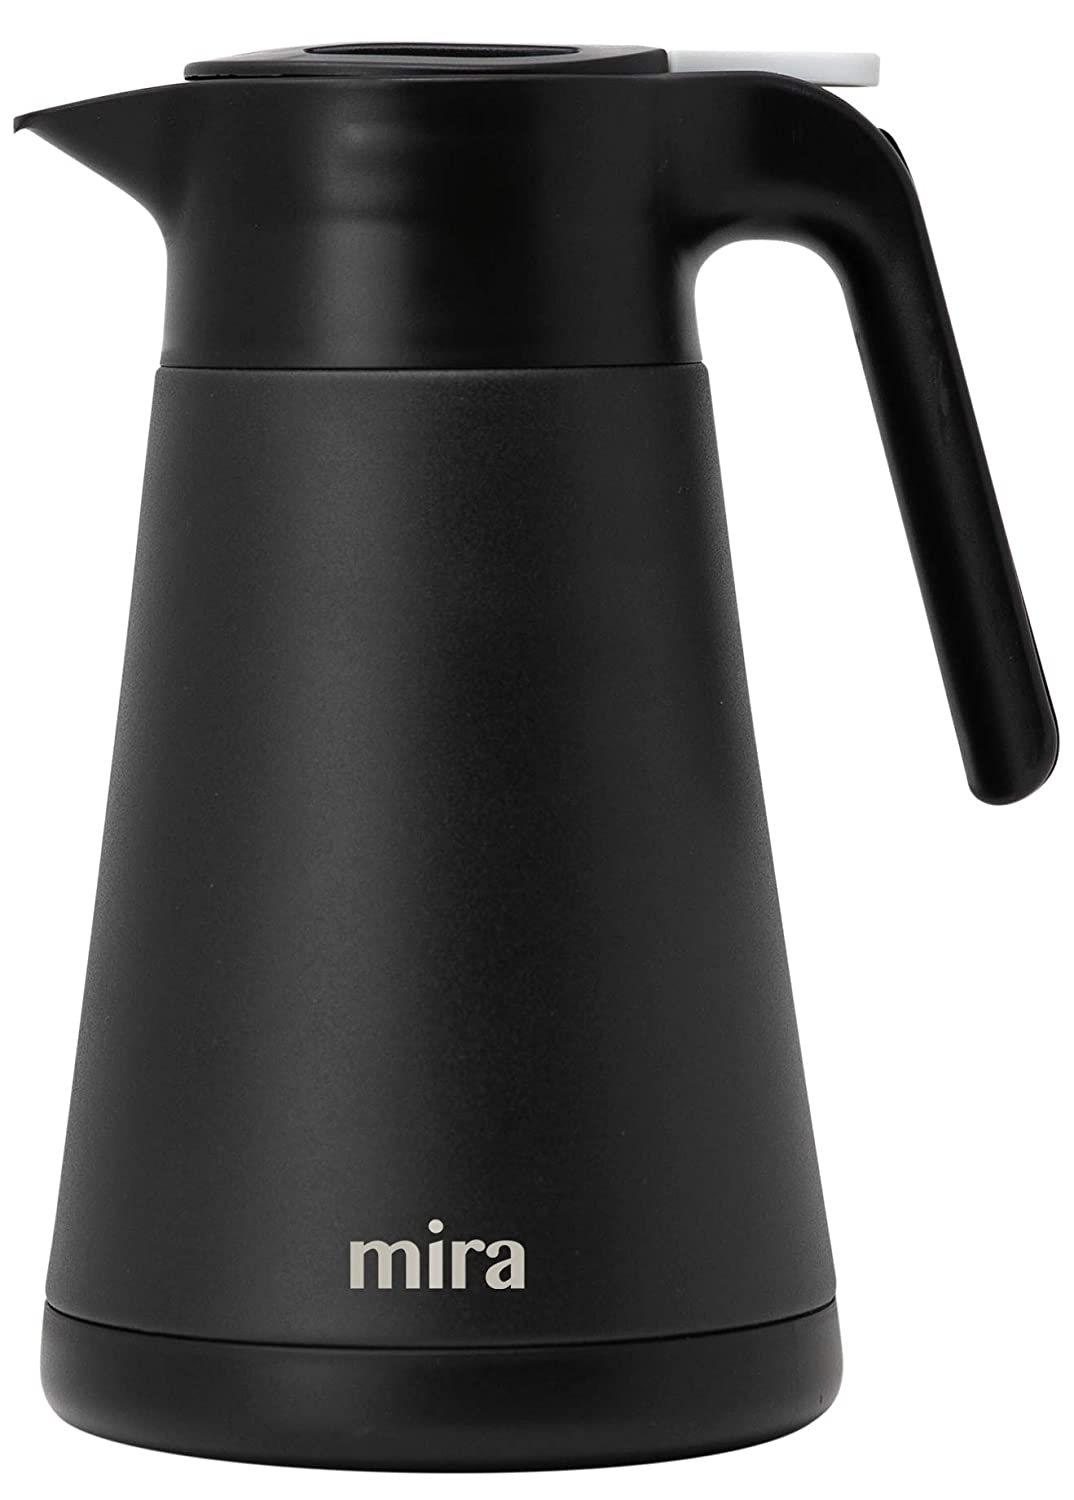 MIRA 40 oz (1.2 L) Stainless Steel Thermal Coffee Carafe | Double Walled Vacuum Insulated Pot | Coffee & Tea Server Stays Hot for 12 Hours or Cold for 24 hours | Black